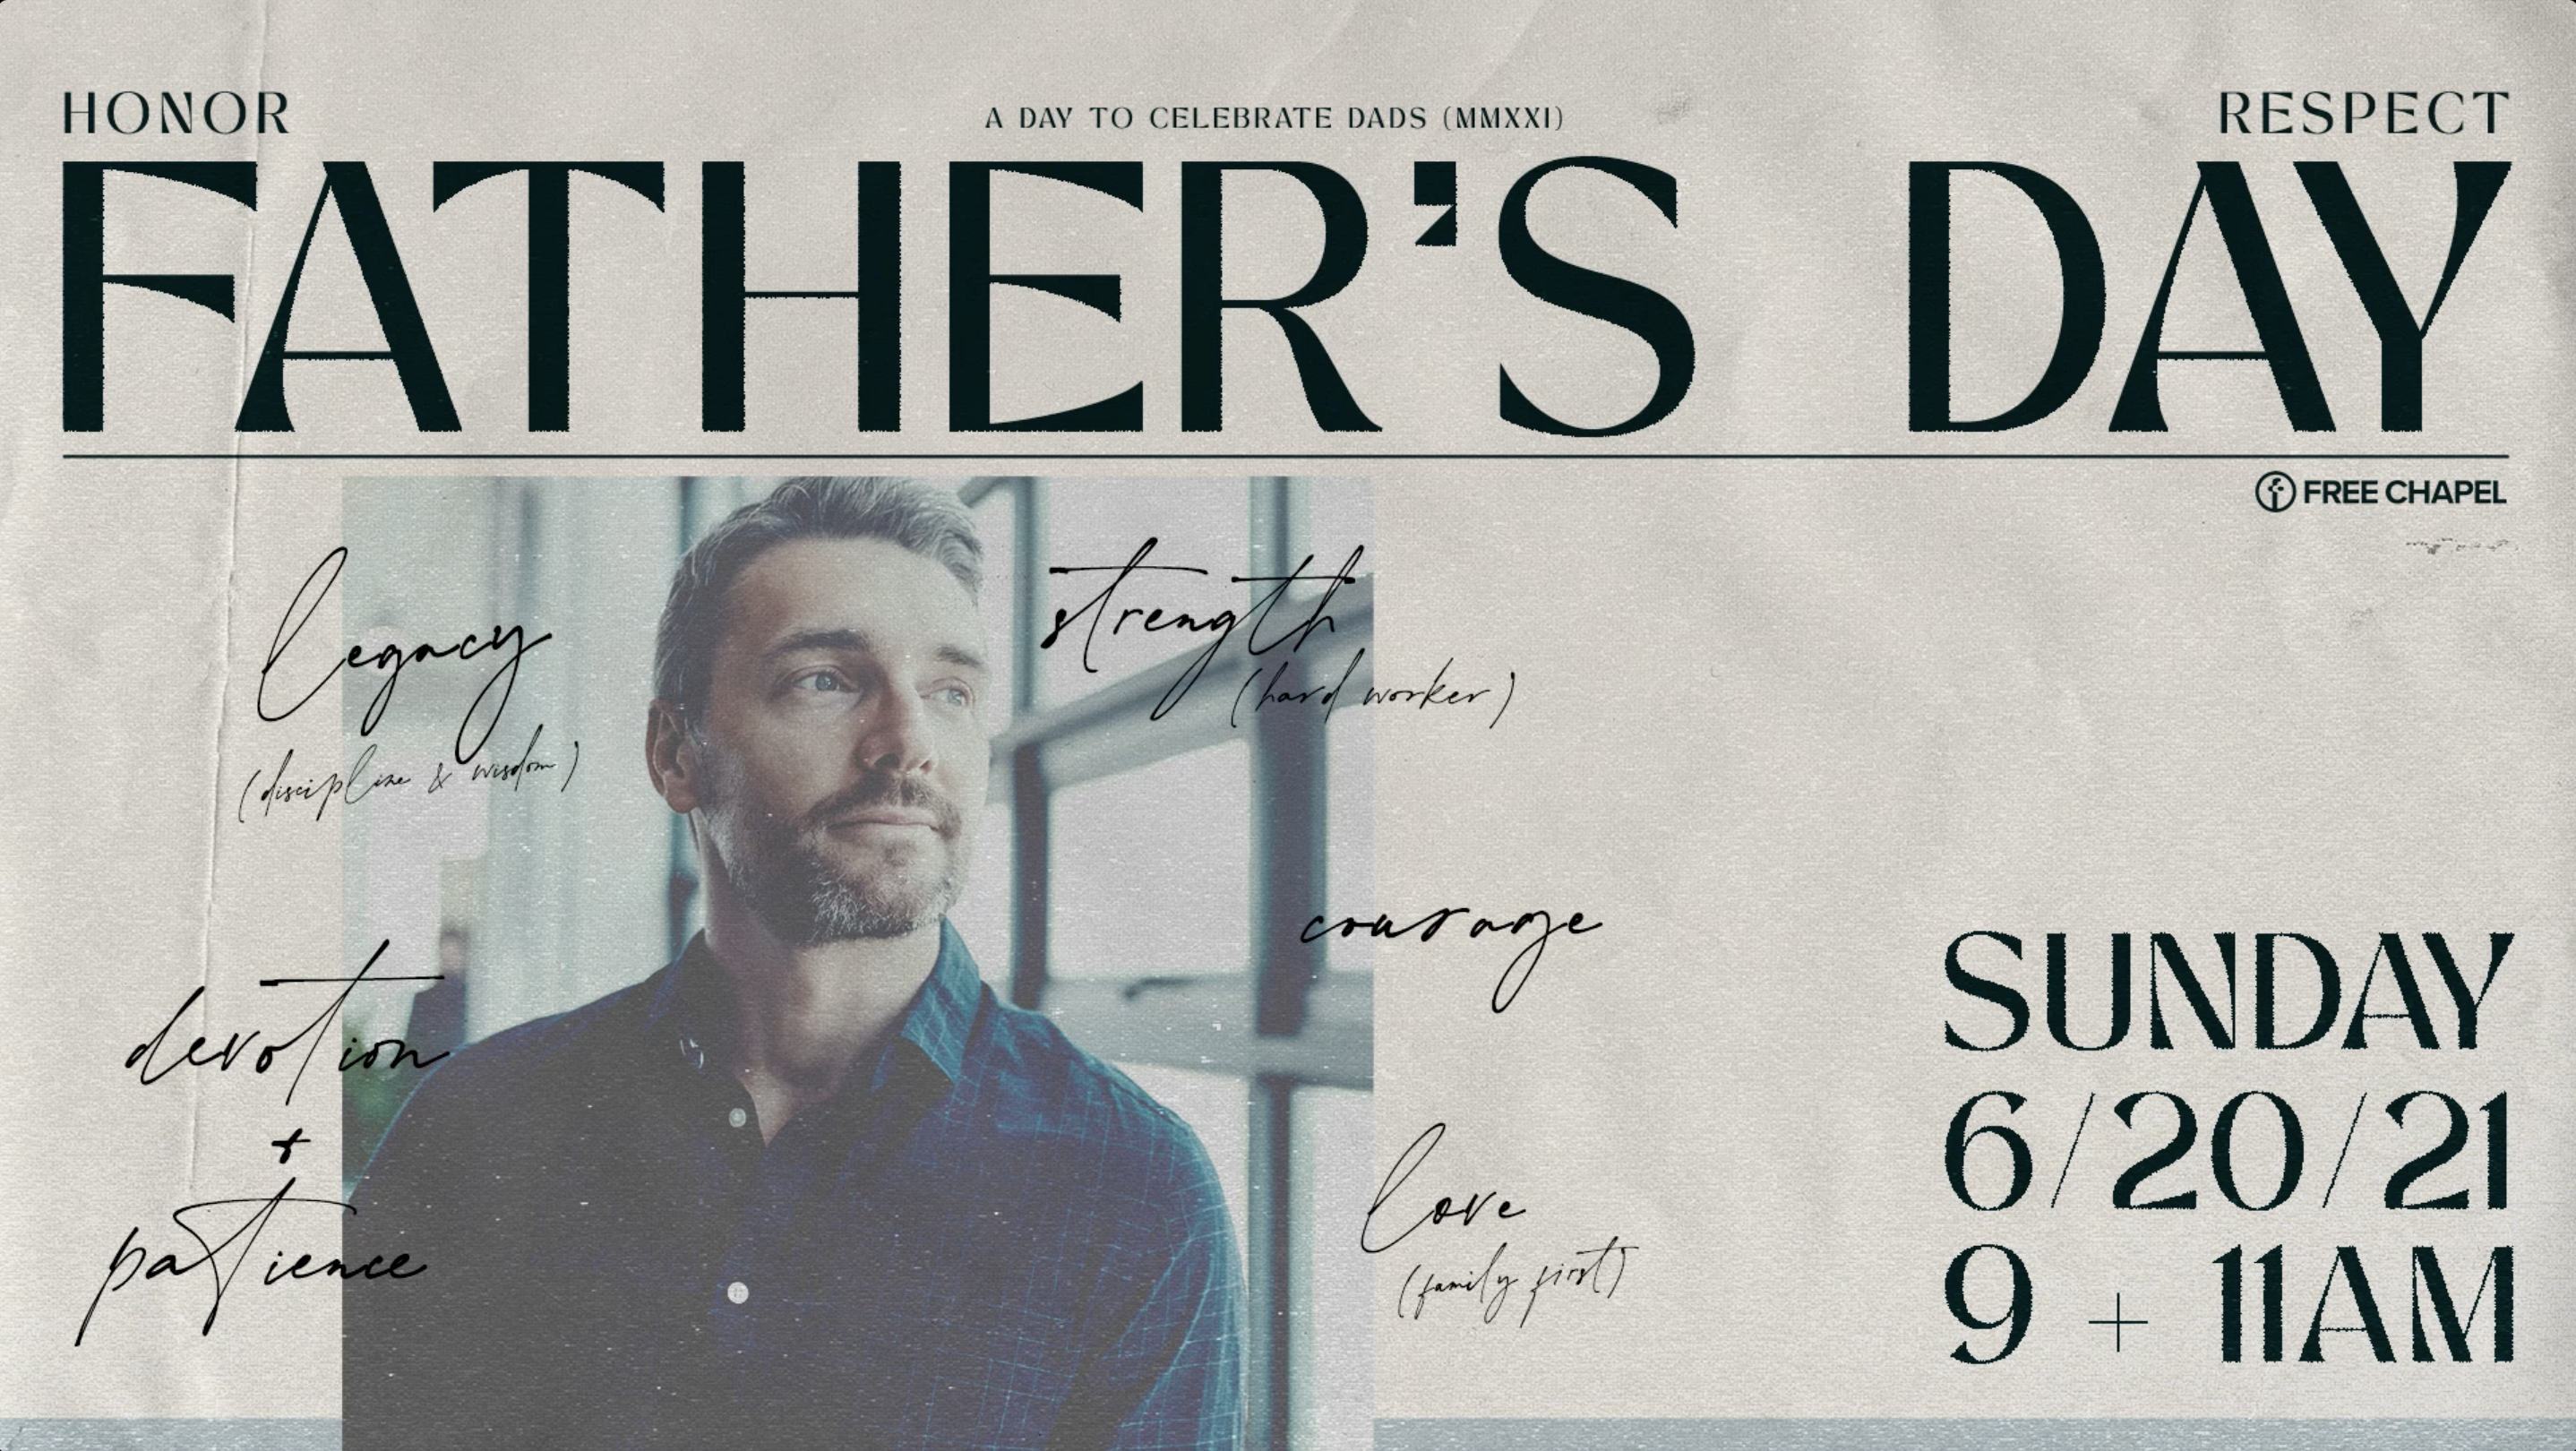 Father's Day at Free Chapel at the Braselton campus